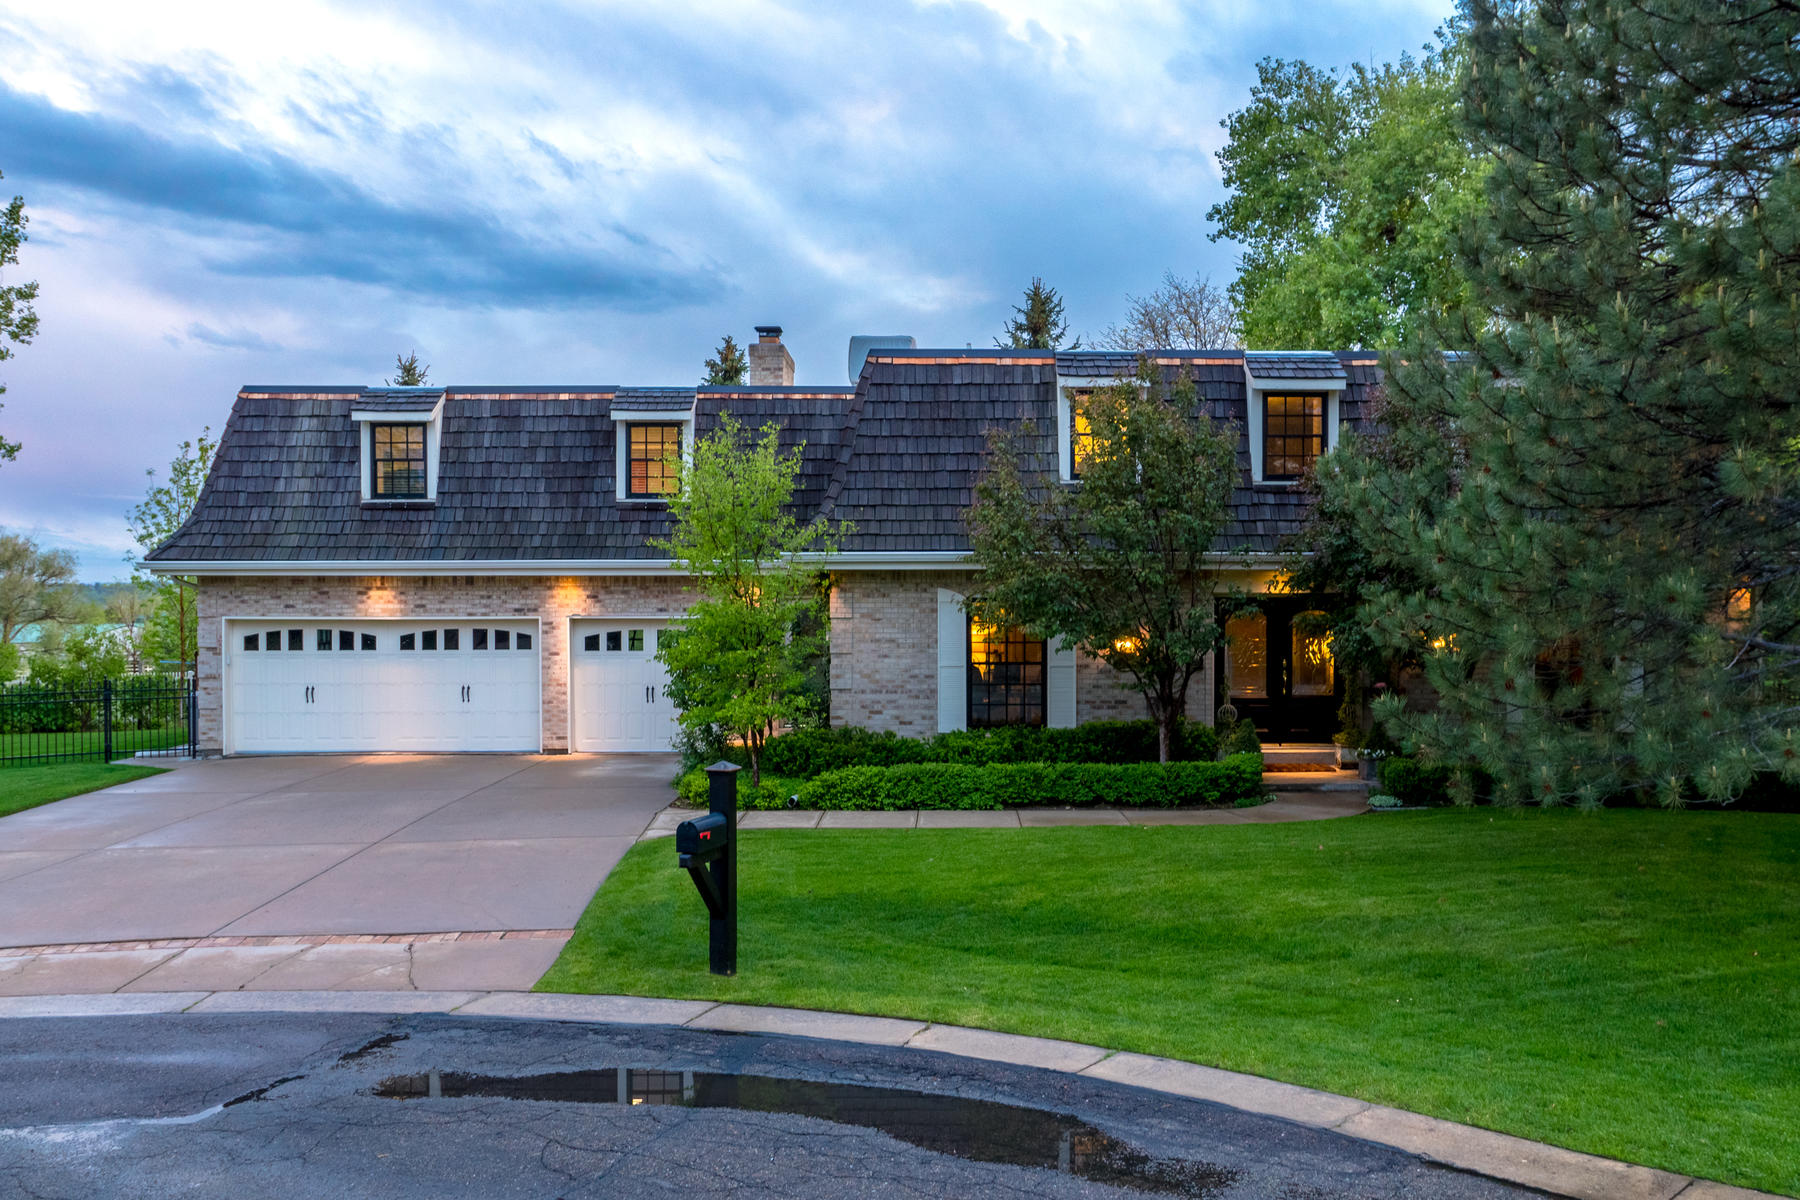 Single Family Home for Sale at Nestled on One of the Best Sites in Rainbow Ridge! 11776 W 53rd Place Arvada, Colorado, 80002 United States